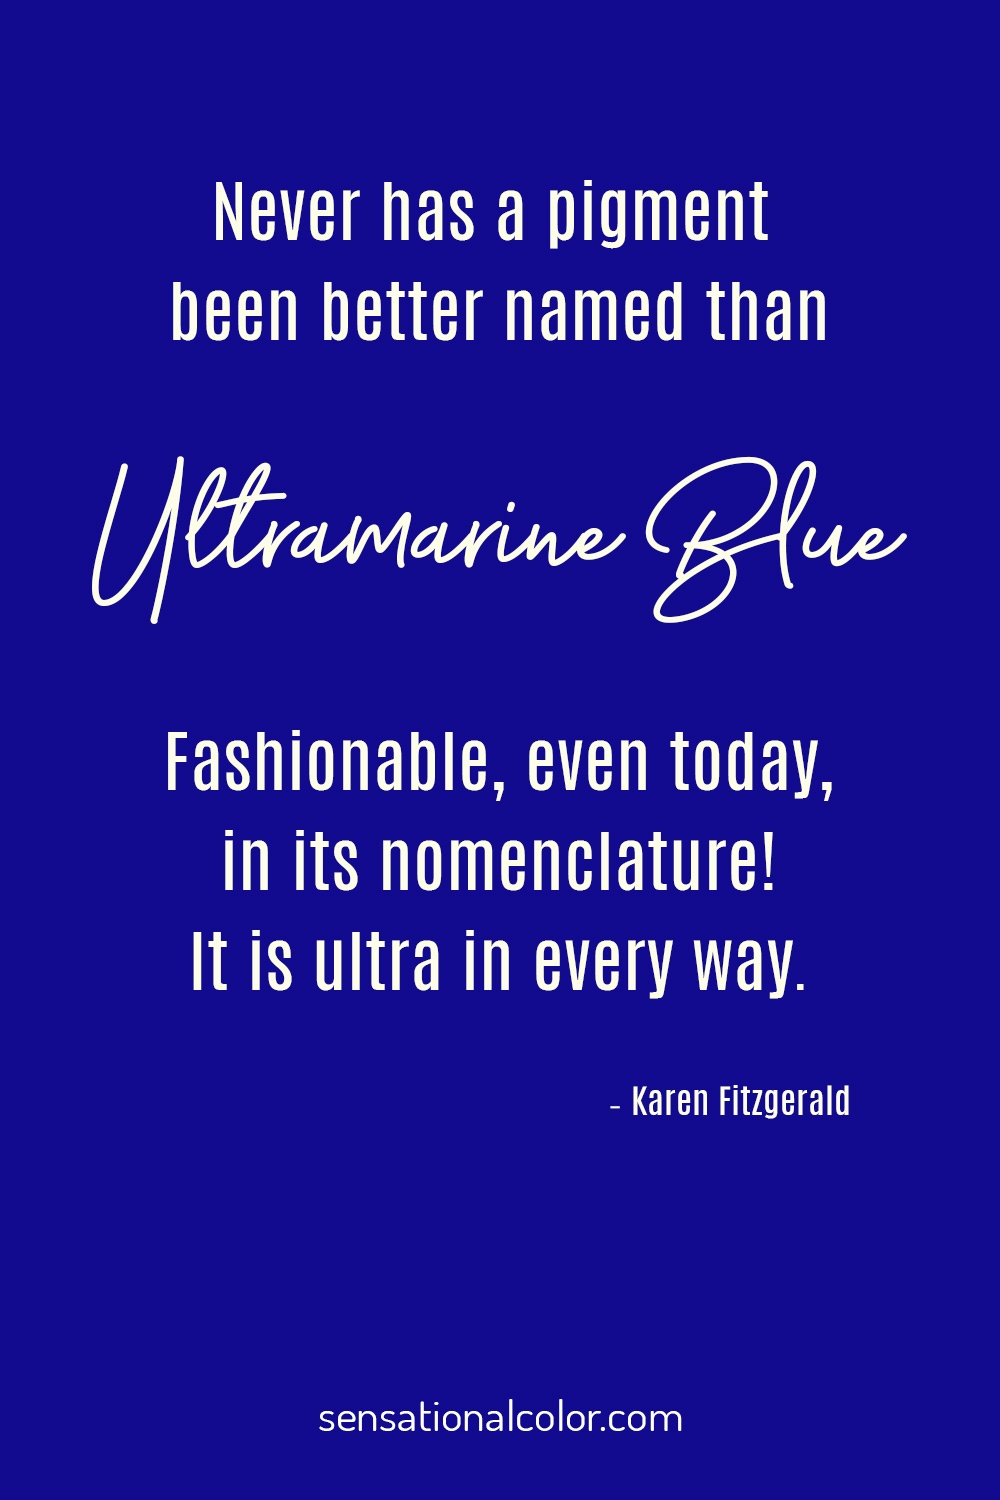 "​""Never has a pigment been better named than ultramarine blue. Fashionable, even today, in its nomenclature! It is ultra in every way."" - Karen Fitzgerald"